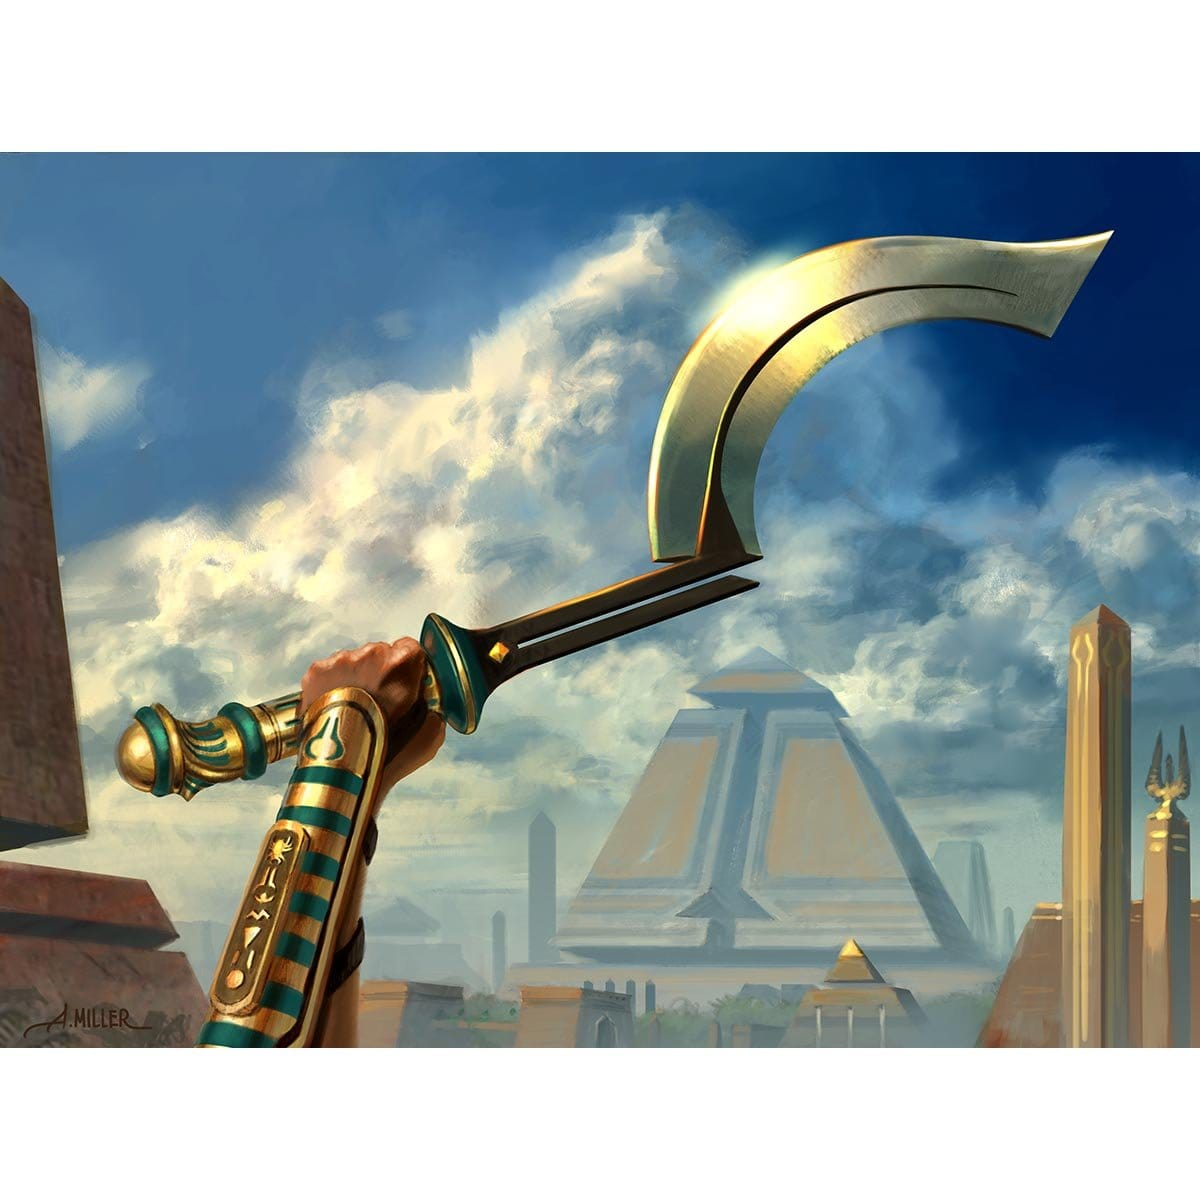 Honed Khopesh Print - Print - Original Magic Art - Accessories for Magic the Gathering and other card games